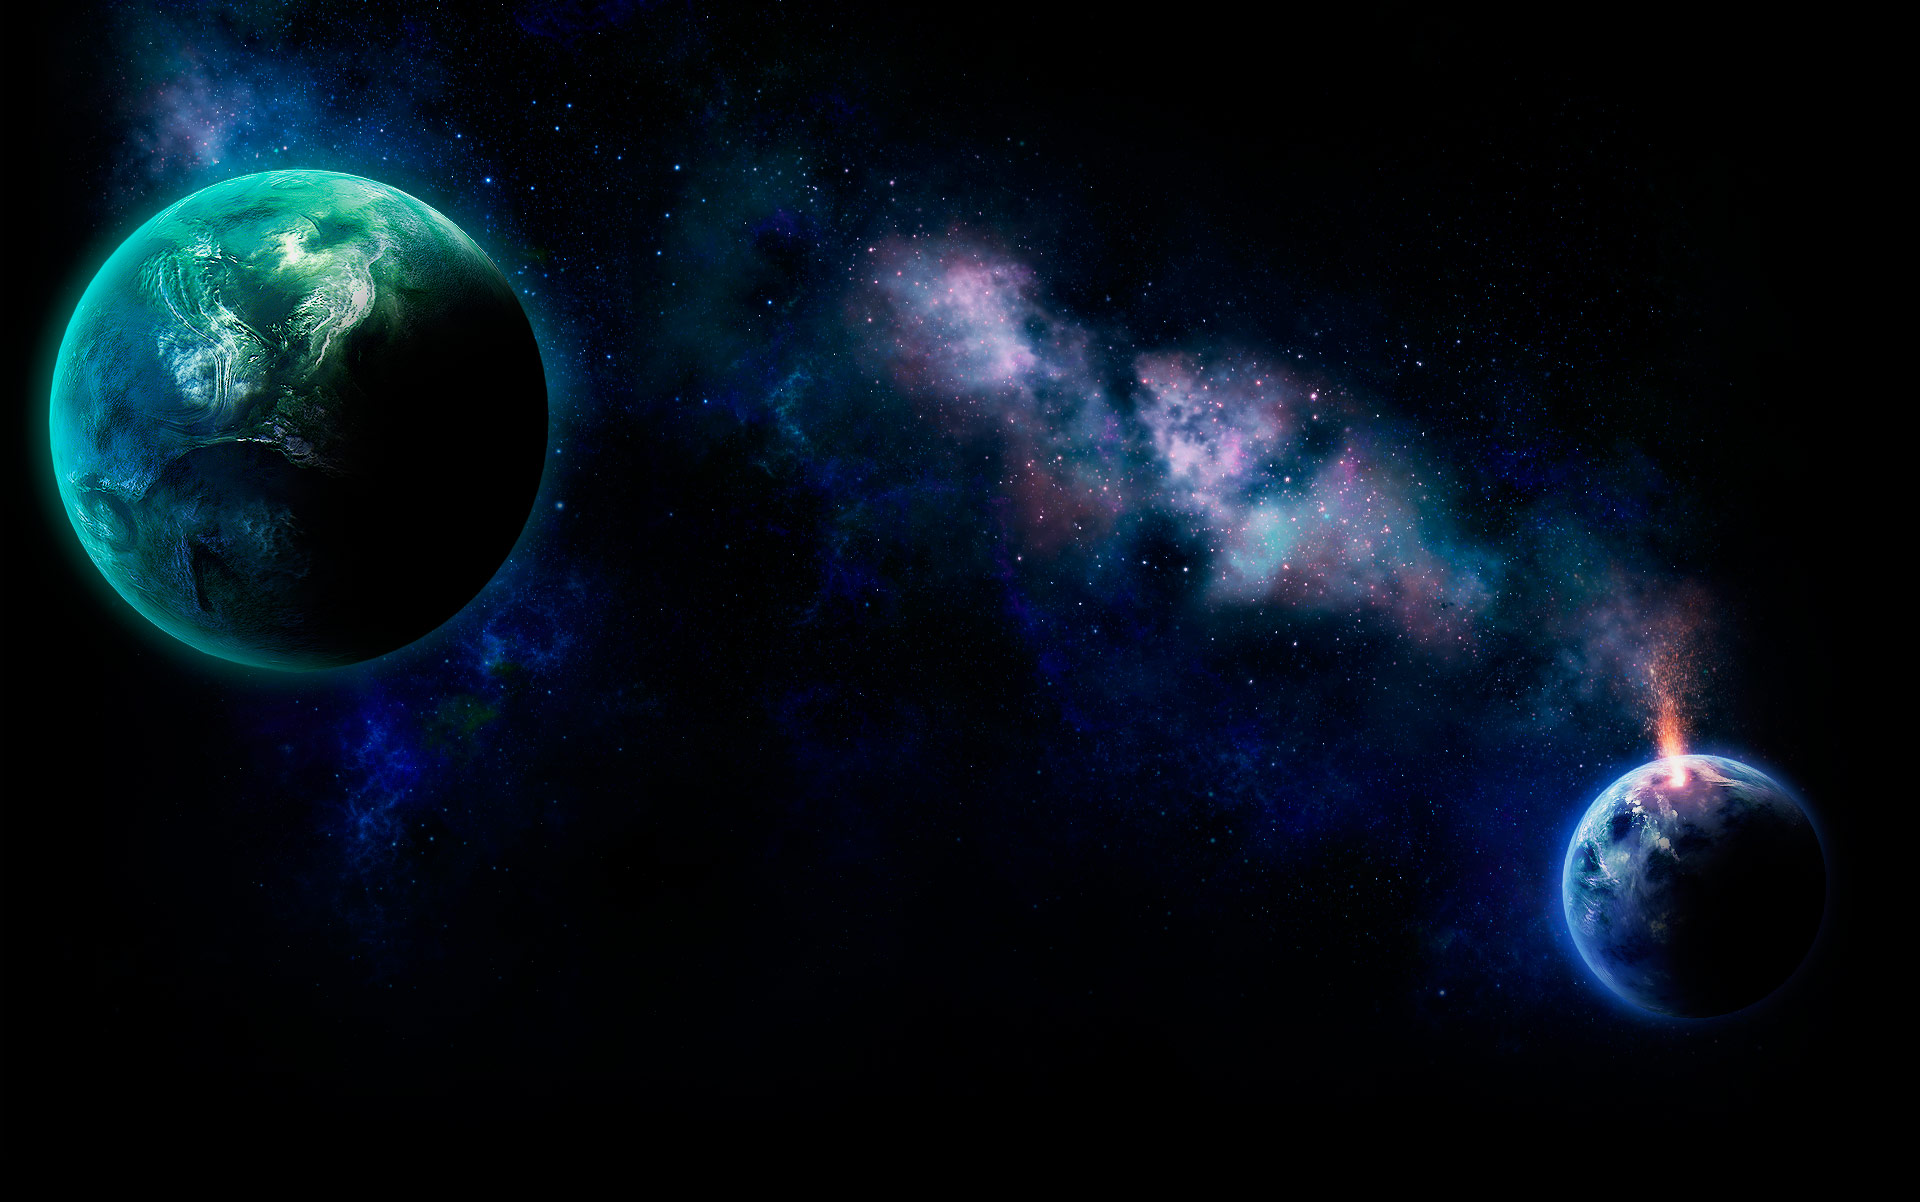 Hd Space Wallpapers Best Of Free Hd Universe Backgrounds for